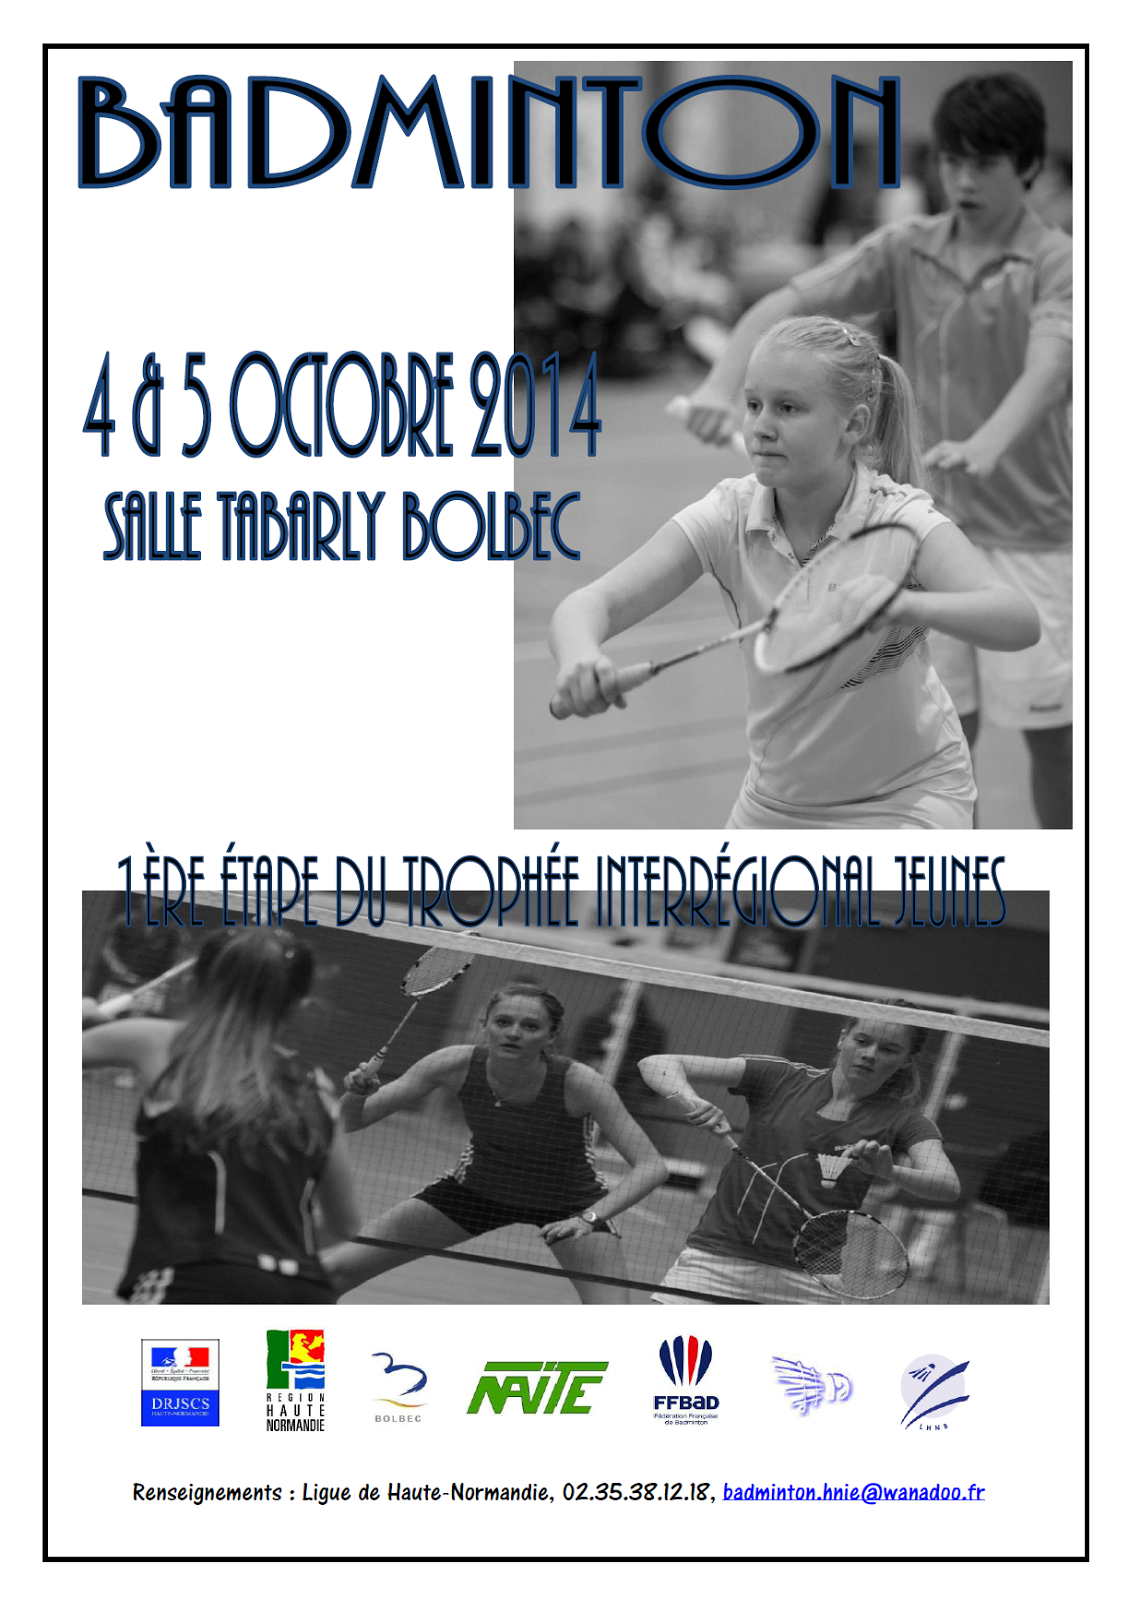 Formation Amt Ligue Normandie Ligue De Haute Normandie De Badminton Août 2014